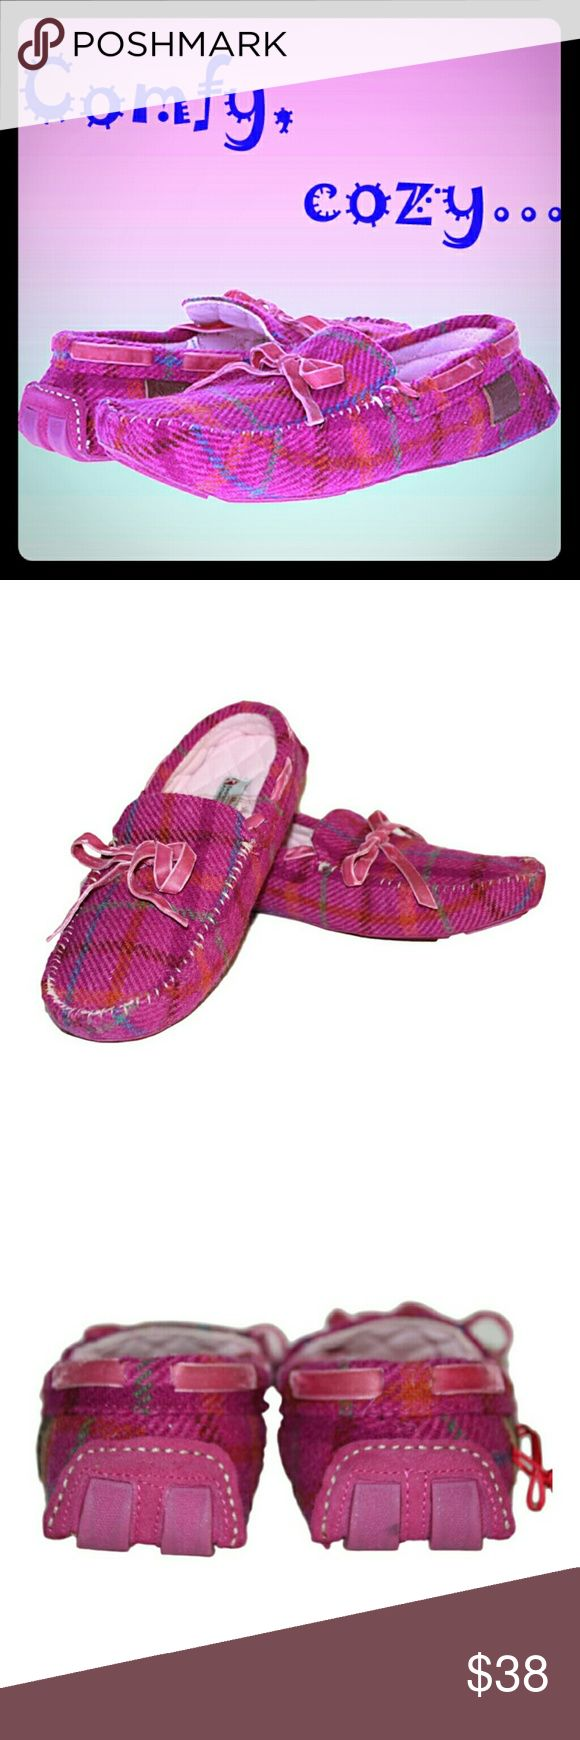 Bedroom Athletics Pink Slippers/Moccasins 👟Comfortable, adorable and warm Bedroom Athletics Victoria Slippers/Moccasins   ✔Color: Pink Check   ✔Features: removable extra soft inserts, flexible outer sole  ✔Size: Large, US 9-10, UK 7-8, EU 41-42, JP 25.5-27   ✔Condition: Brand New, in box, manufacturer packaged and sealed. Note: except for some spots on one of the inserts (please see photos), the slippers are in excellent condition. Bedroom Athletics Shoes Slippers